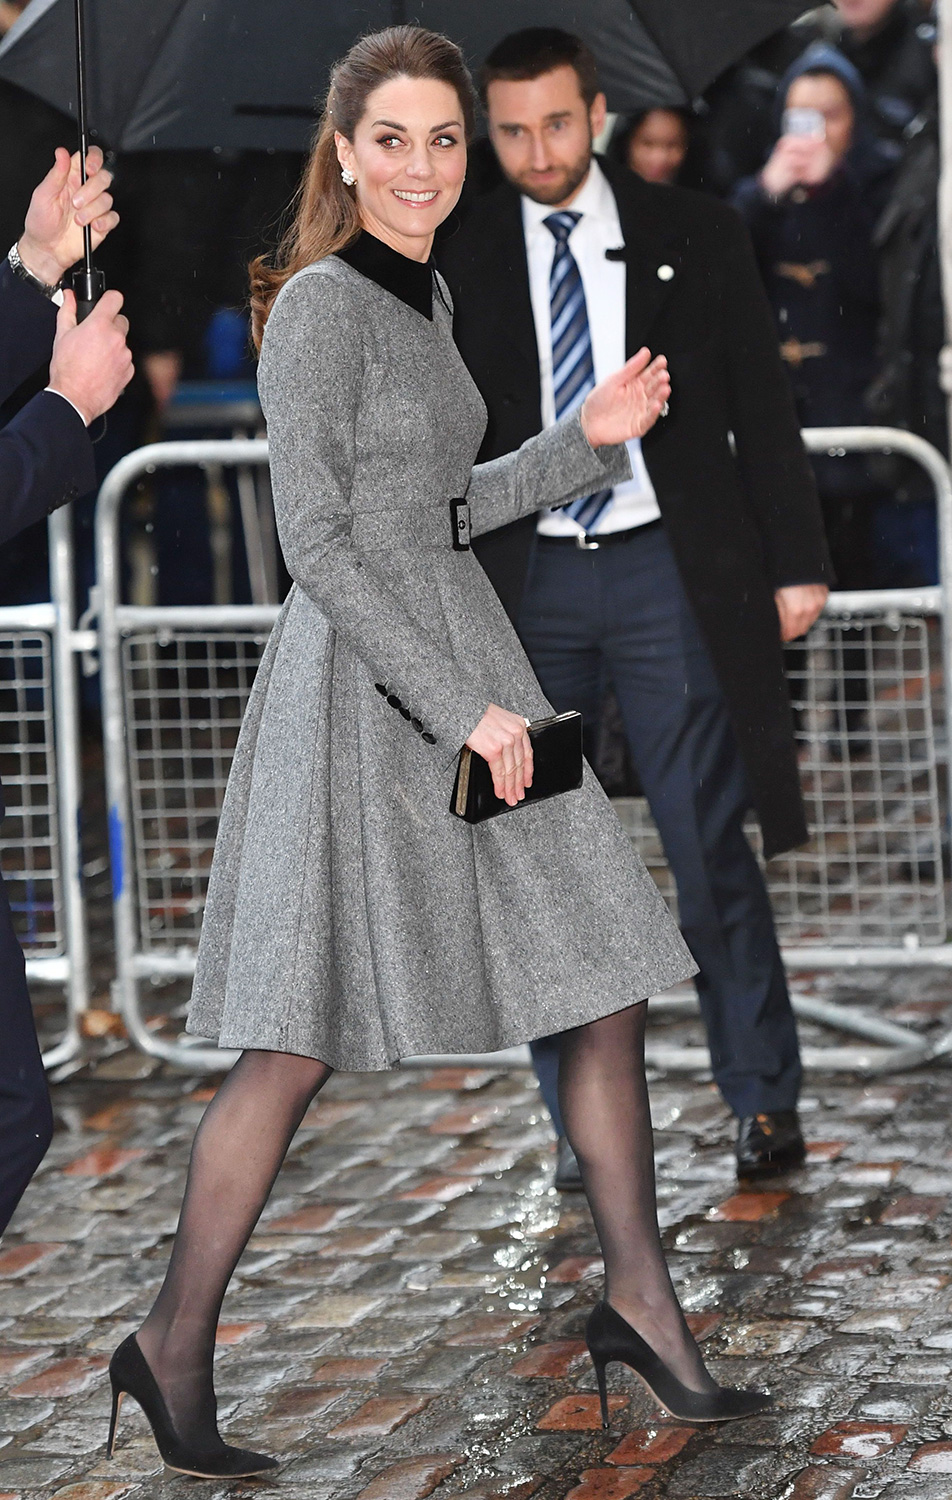 Prince William, Duke of Cambridge and Catherine, Duchess of Cambridge attend the UK Holocaust Memorial Day Commemorative Ceremony in Westminster on January 27, 2020 in London, England